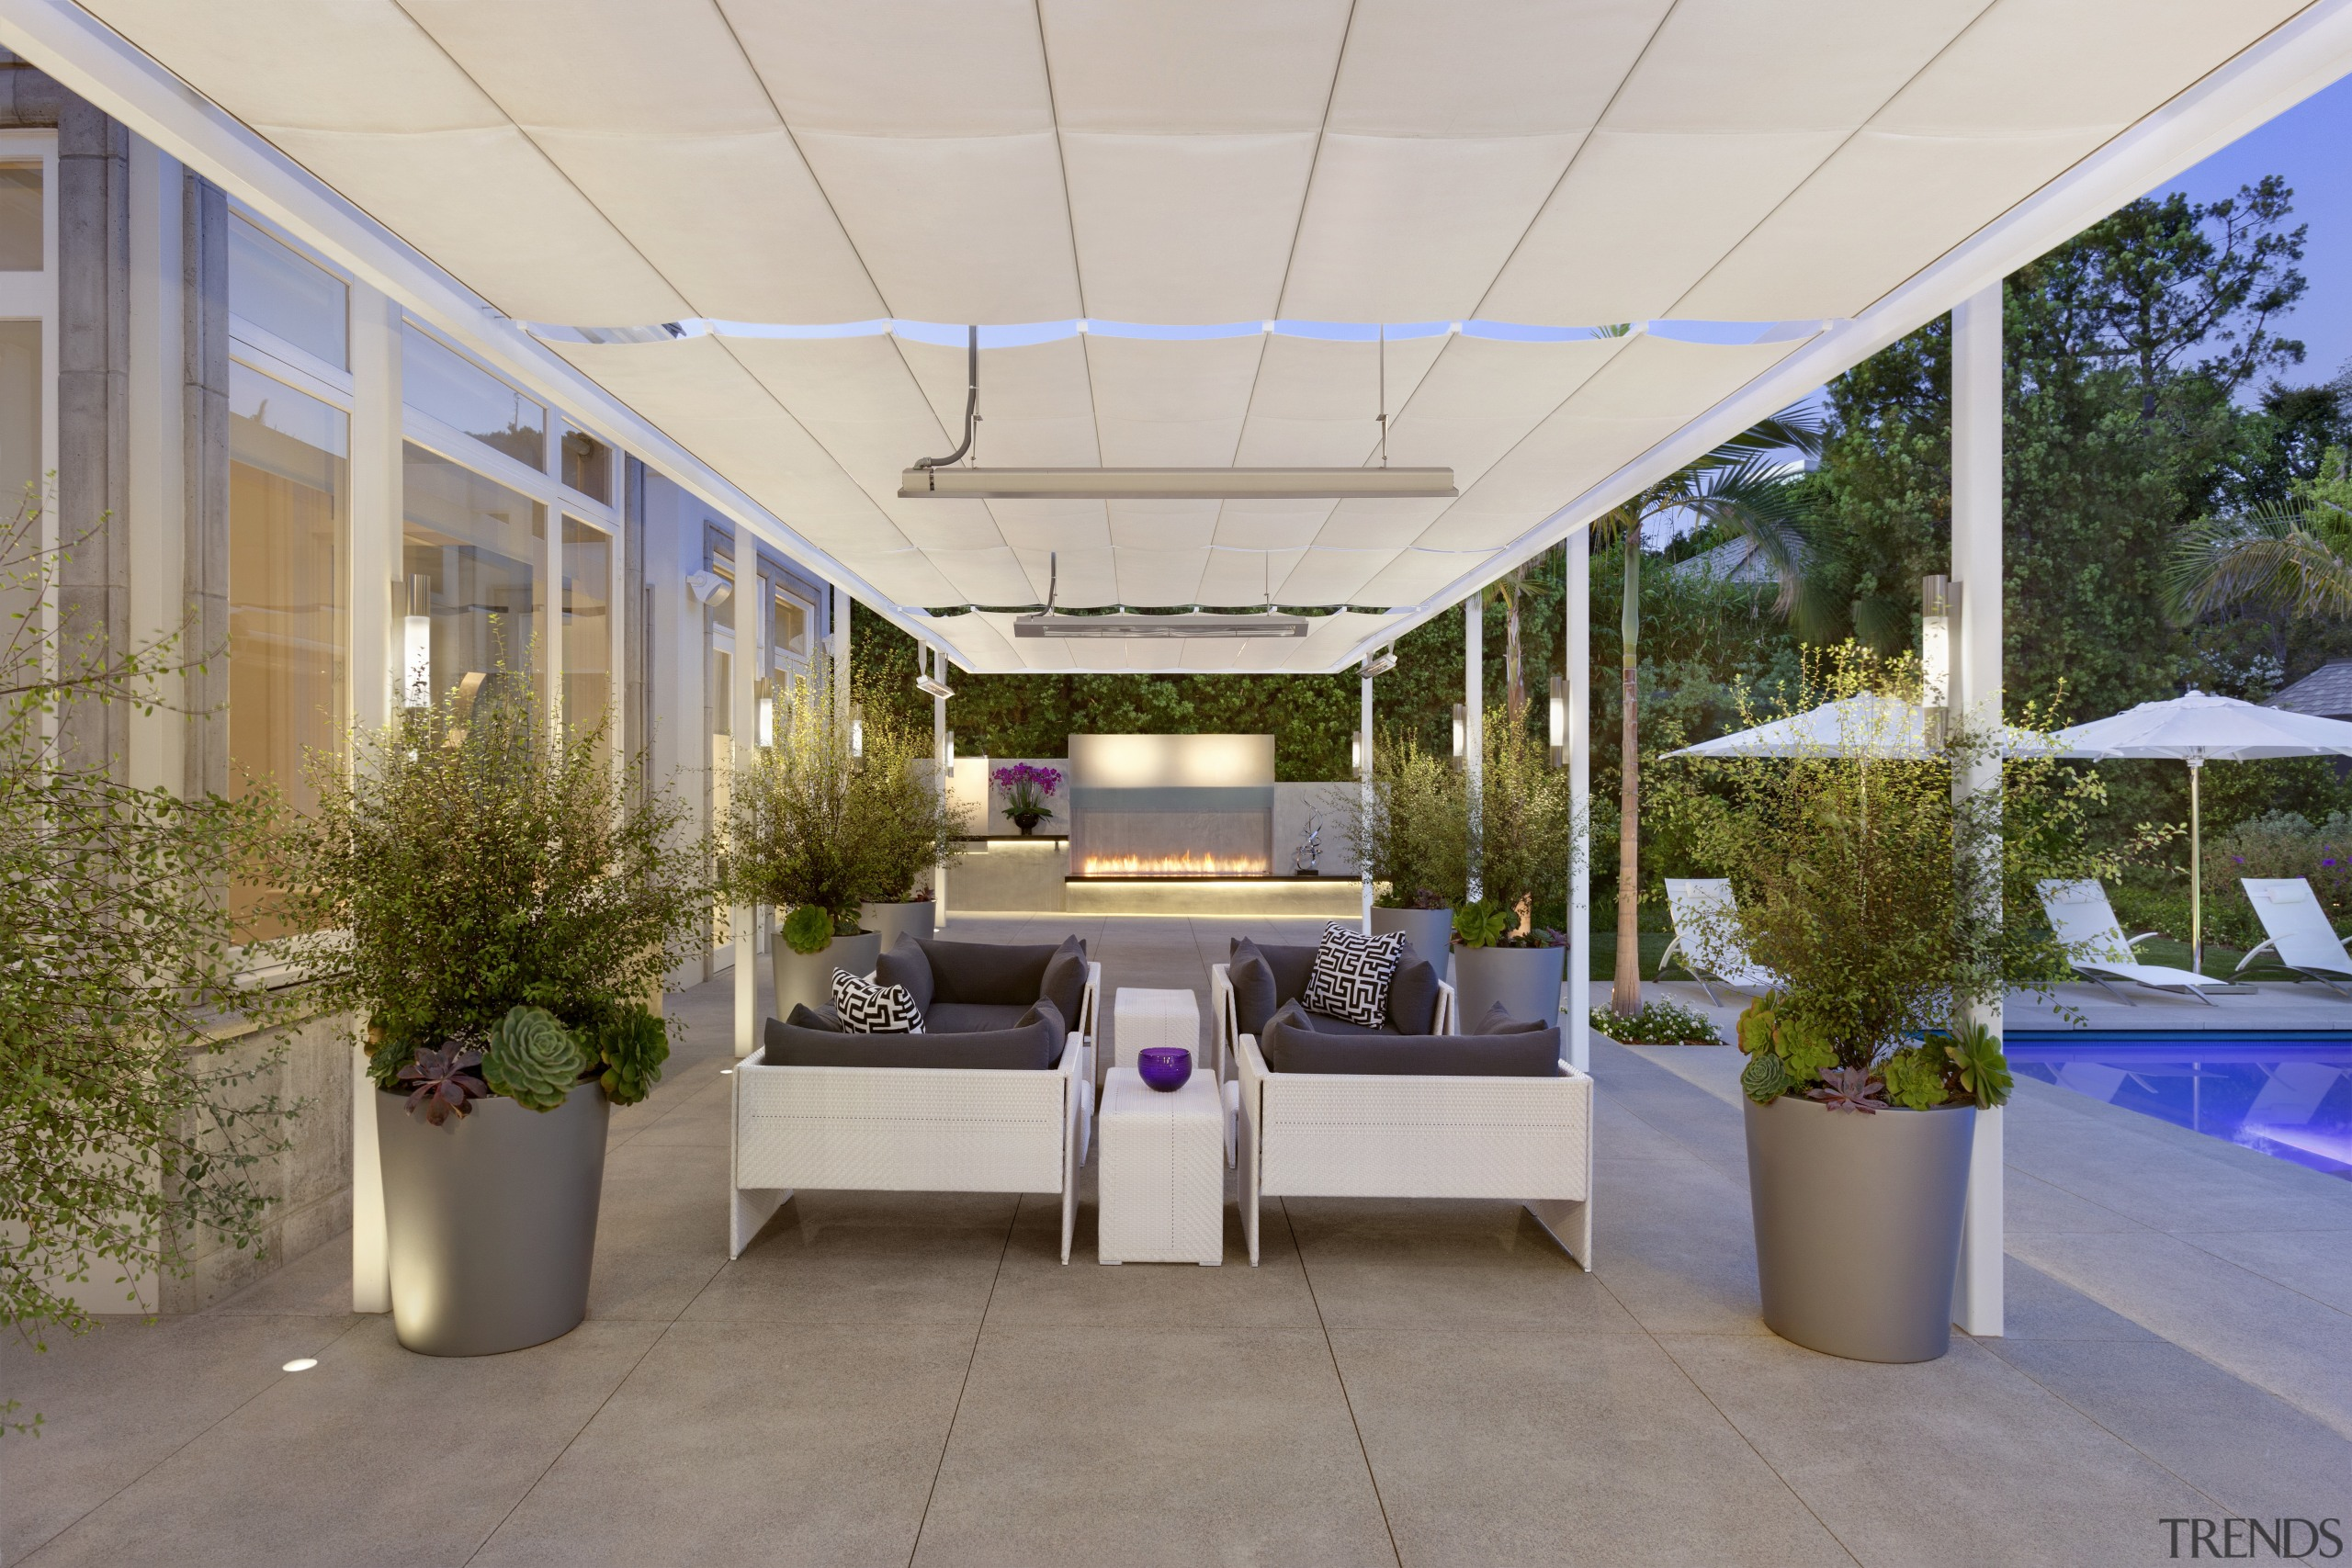 View of the patio area. - View of estate, interior design, patio, real estate, roof, gray